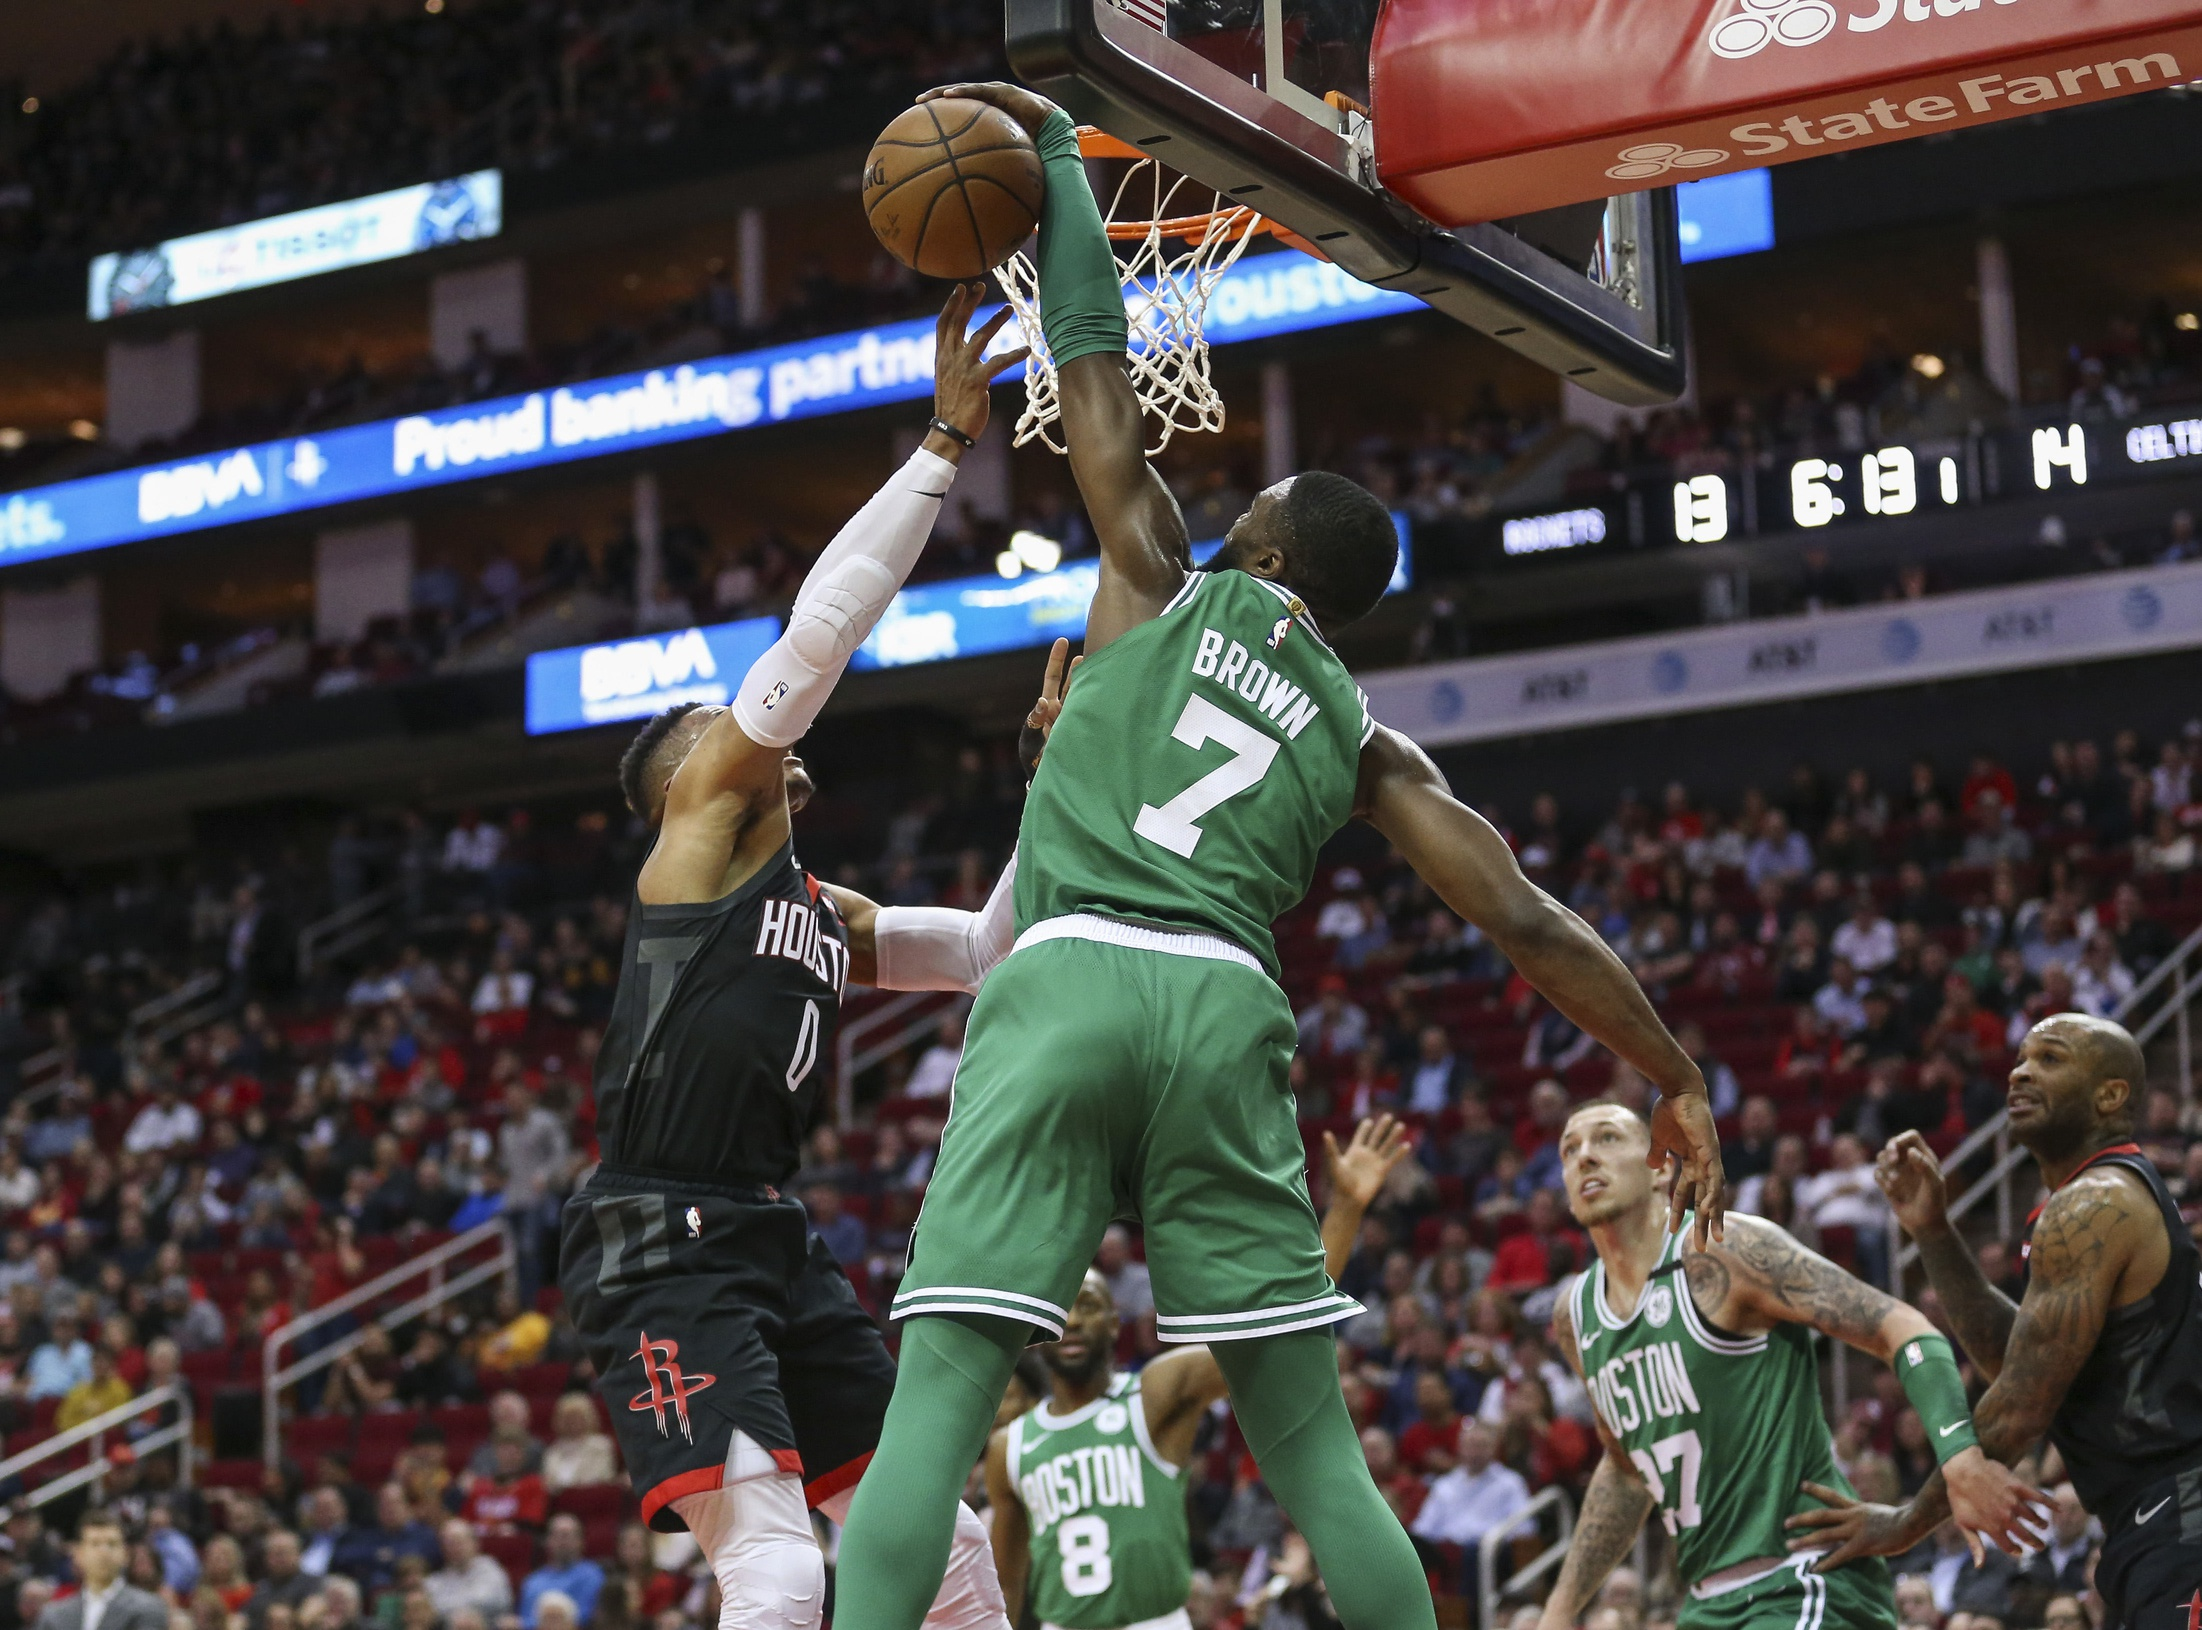 Your Morning Dump... Where all the Celtics need to do is continue their brand of basketball